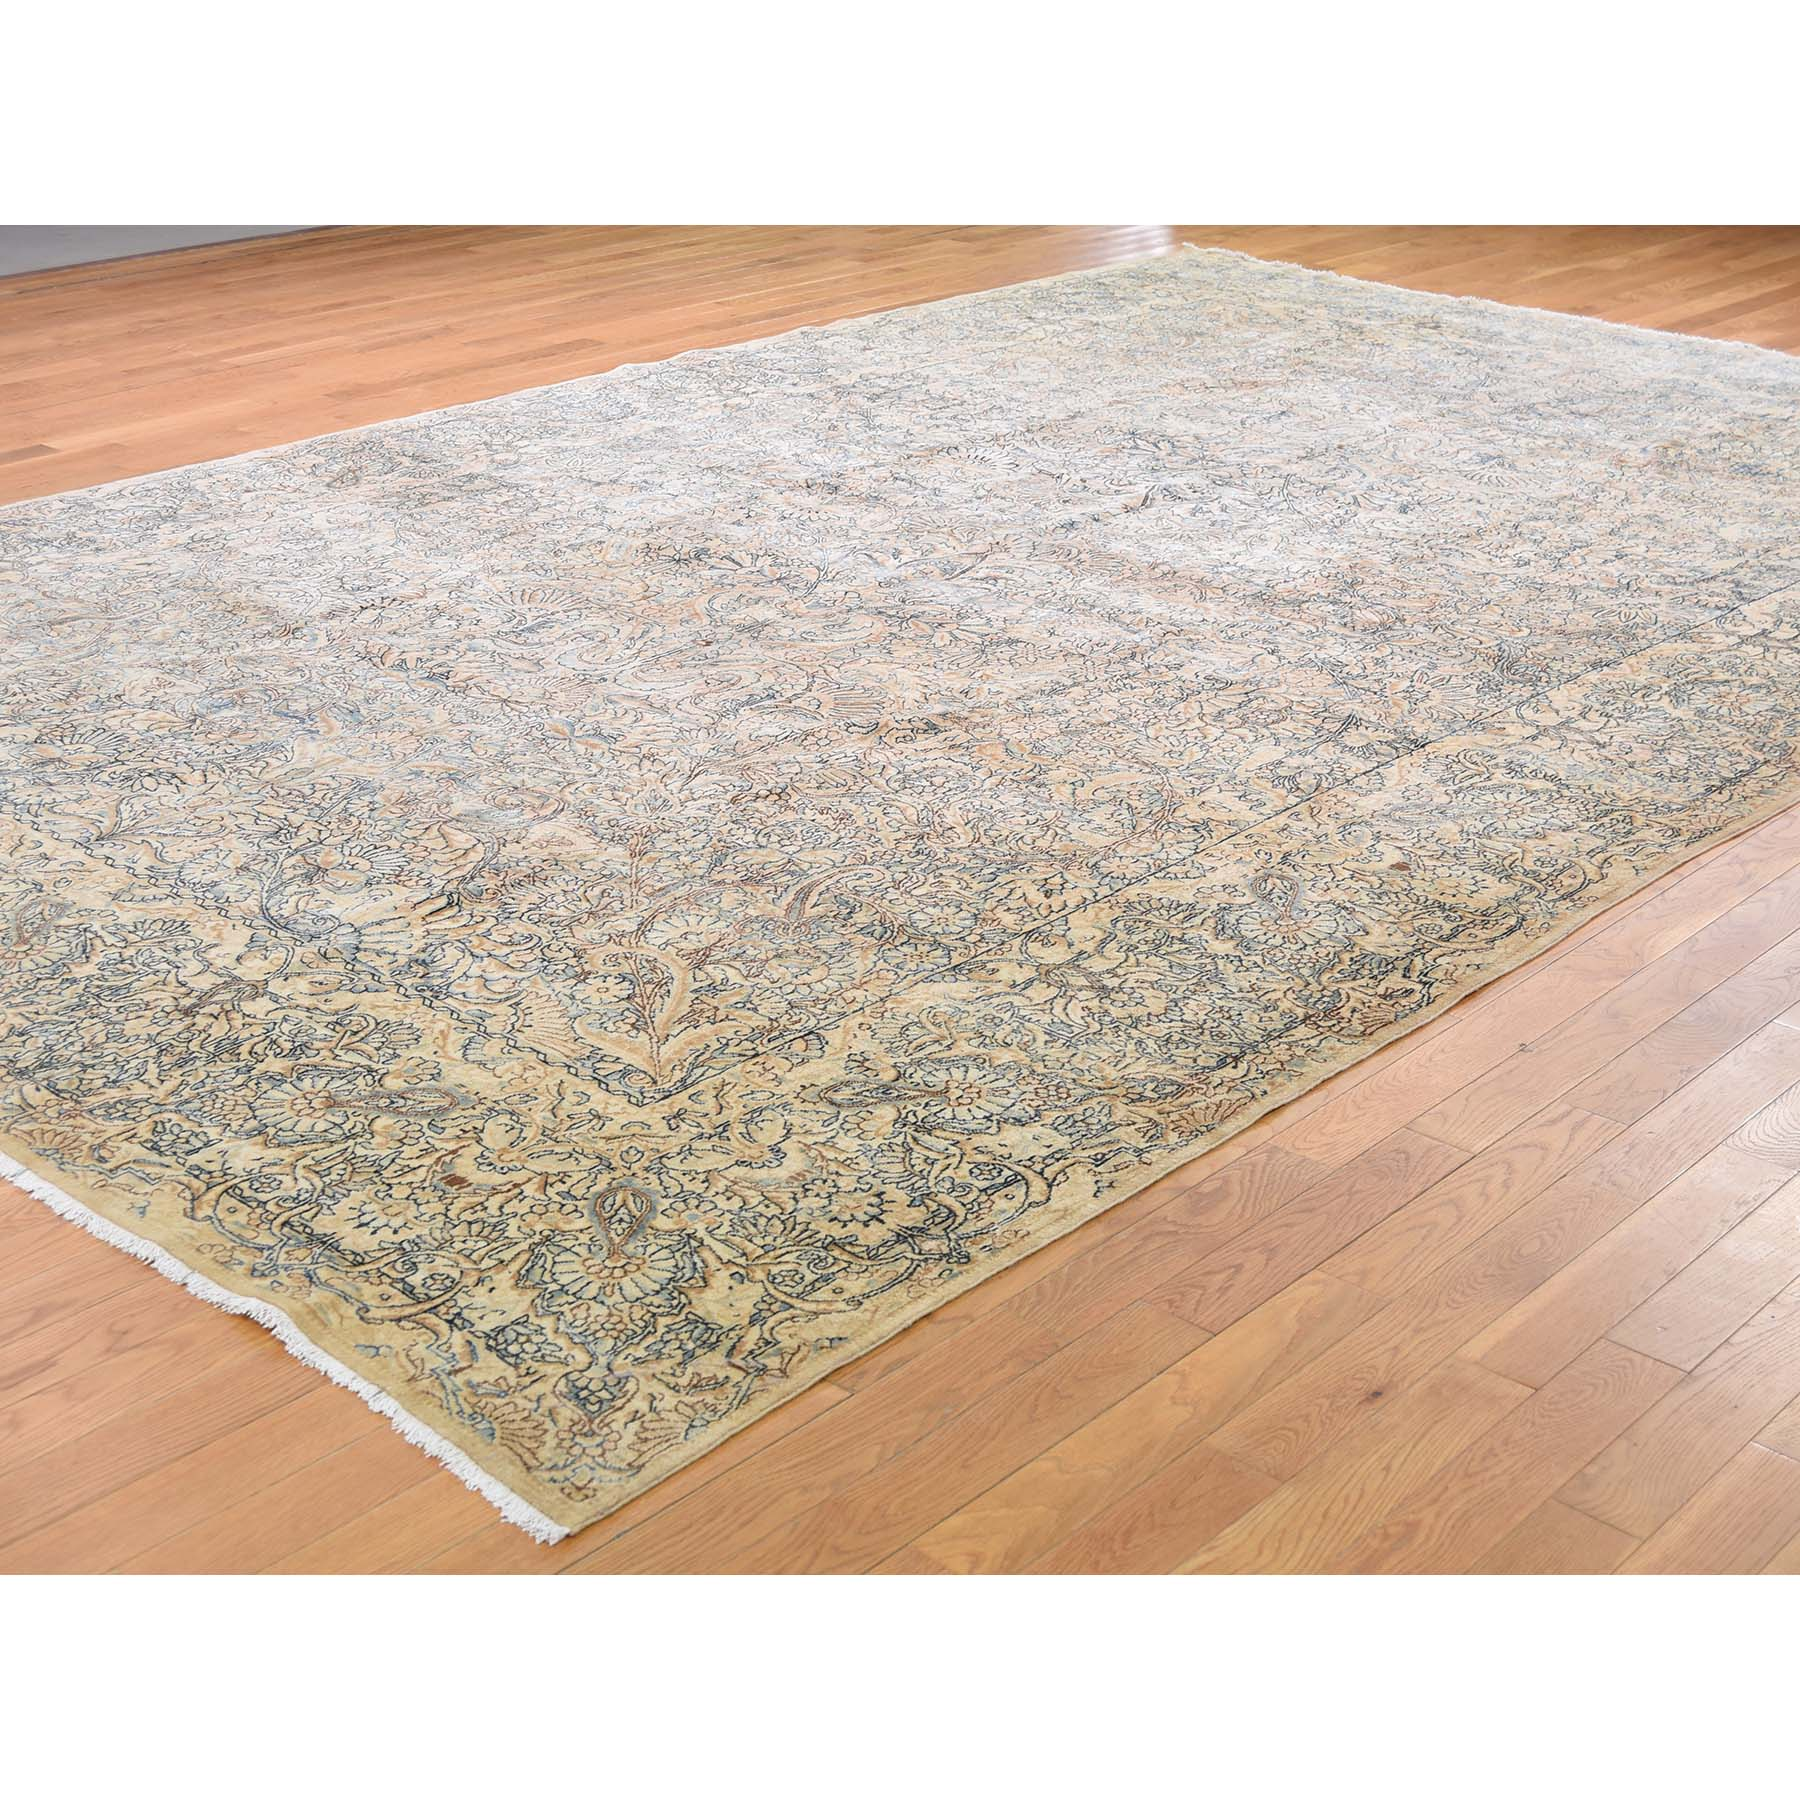 "Handmade Antique Rectangle Rug > Design# SH45128 > Size: 9'-8"" x 14'-10"" [ONLINE ONLY]"